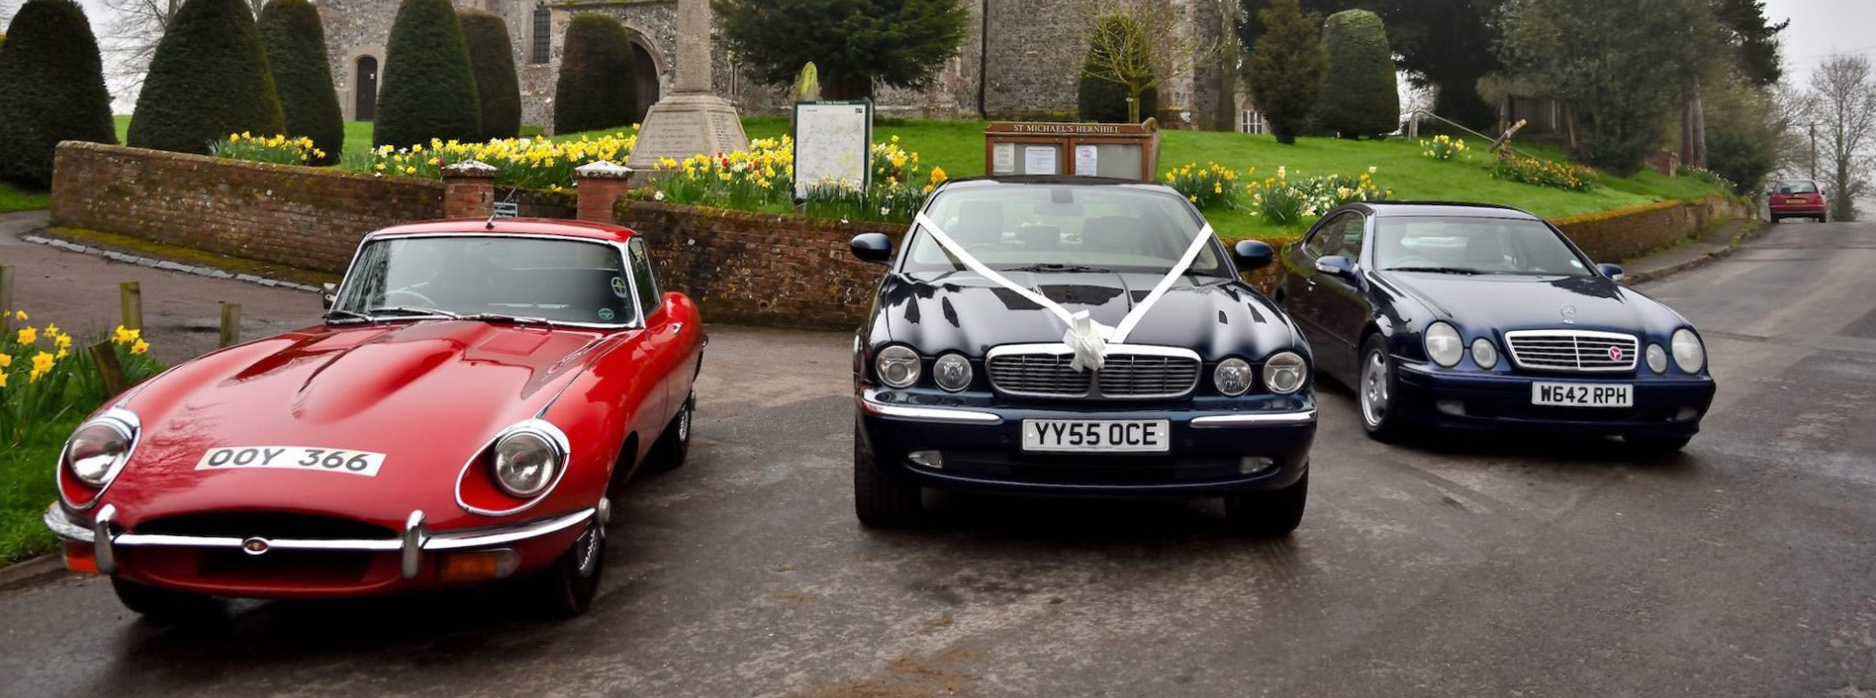 kent classic wedding cars wedding car hire whitstable. Black Bedroom Furniture Sets. Home Design Ideas